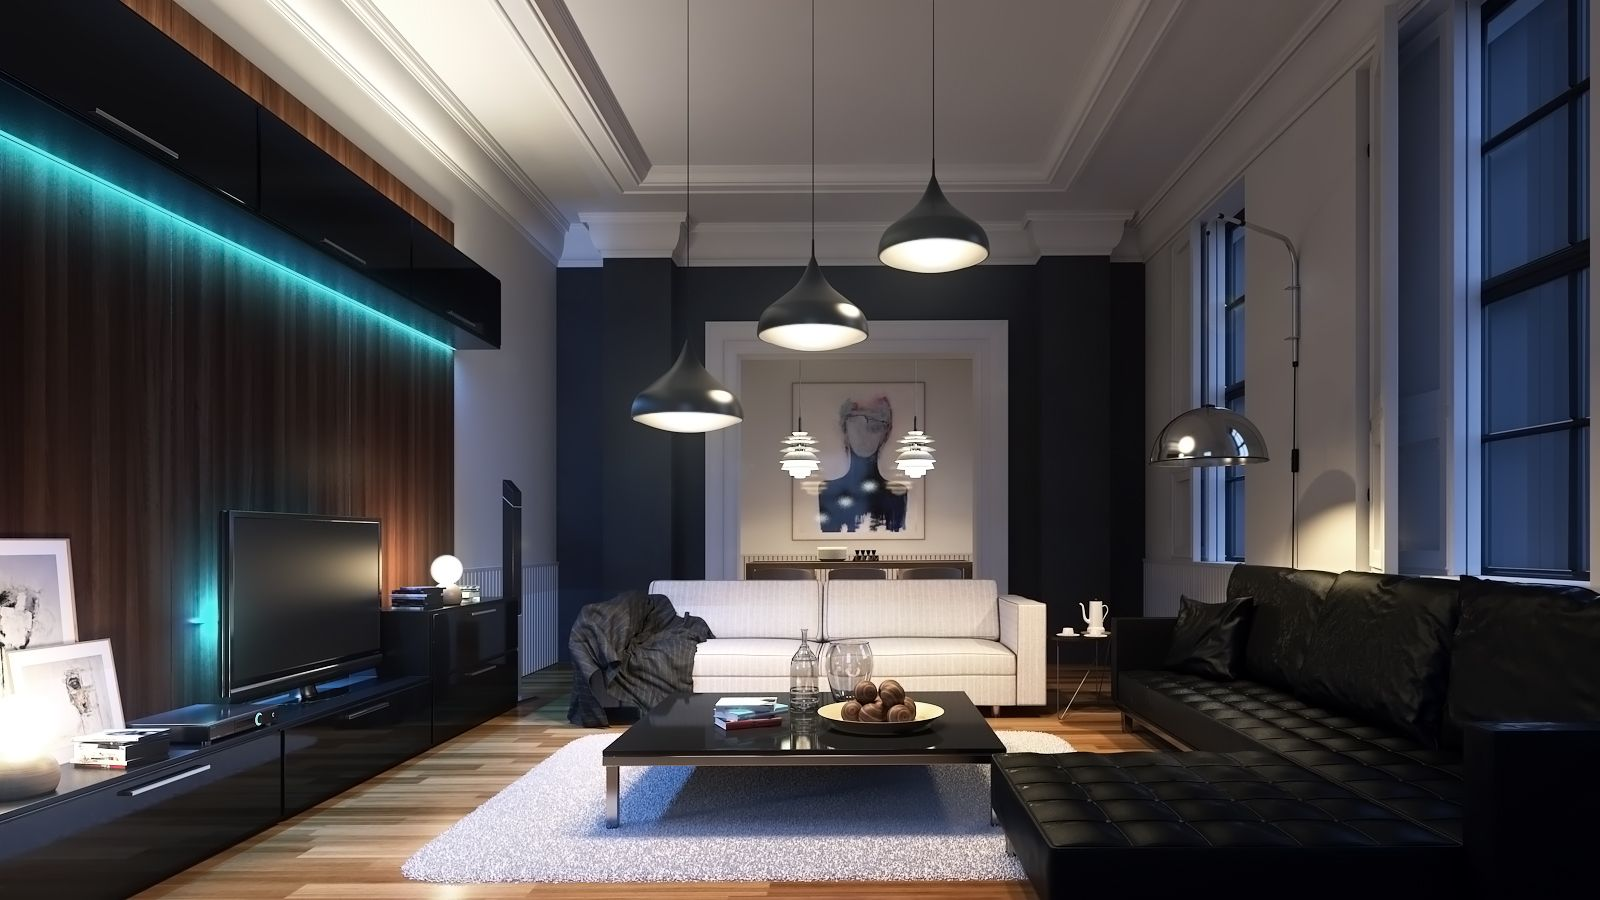 Vray 3ds max night interior making of part 1 vray for Vray interior lighting rendering tutorial